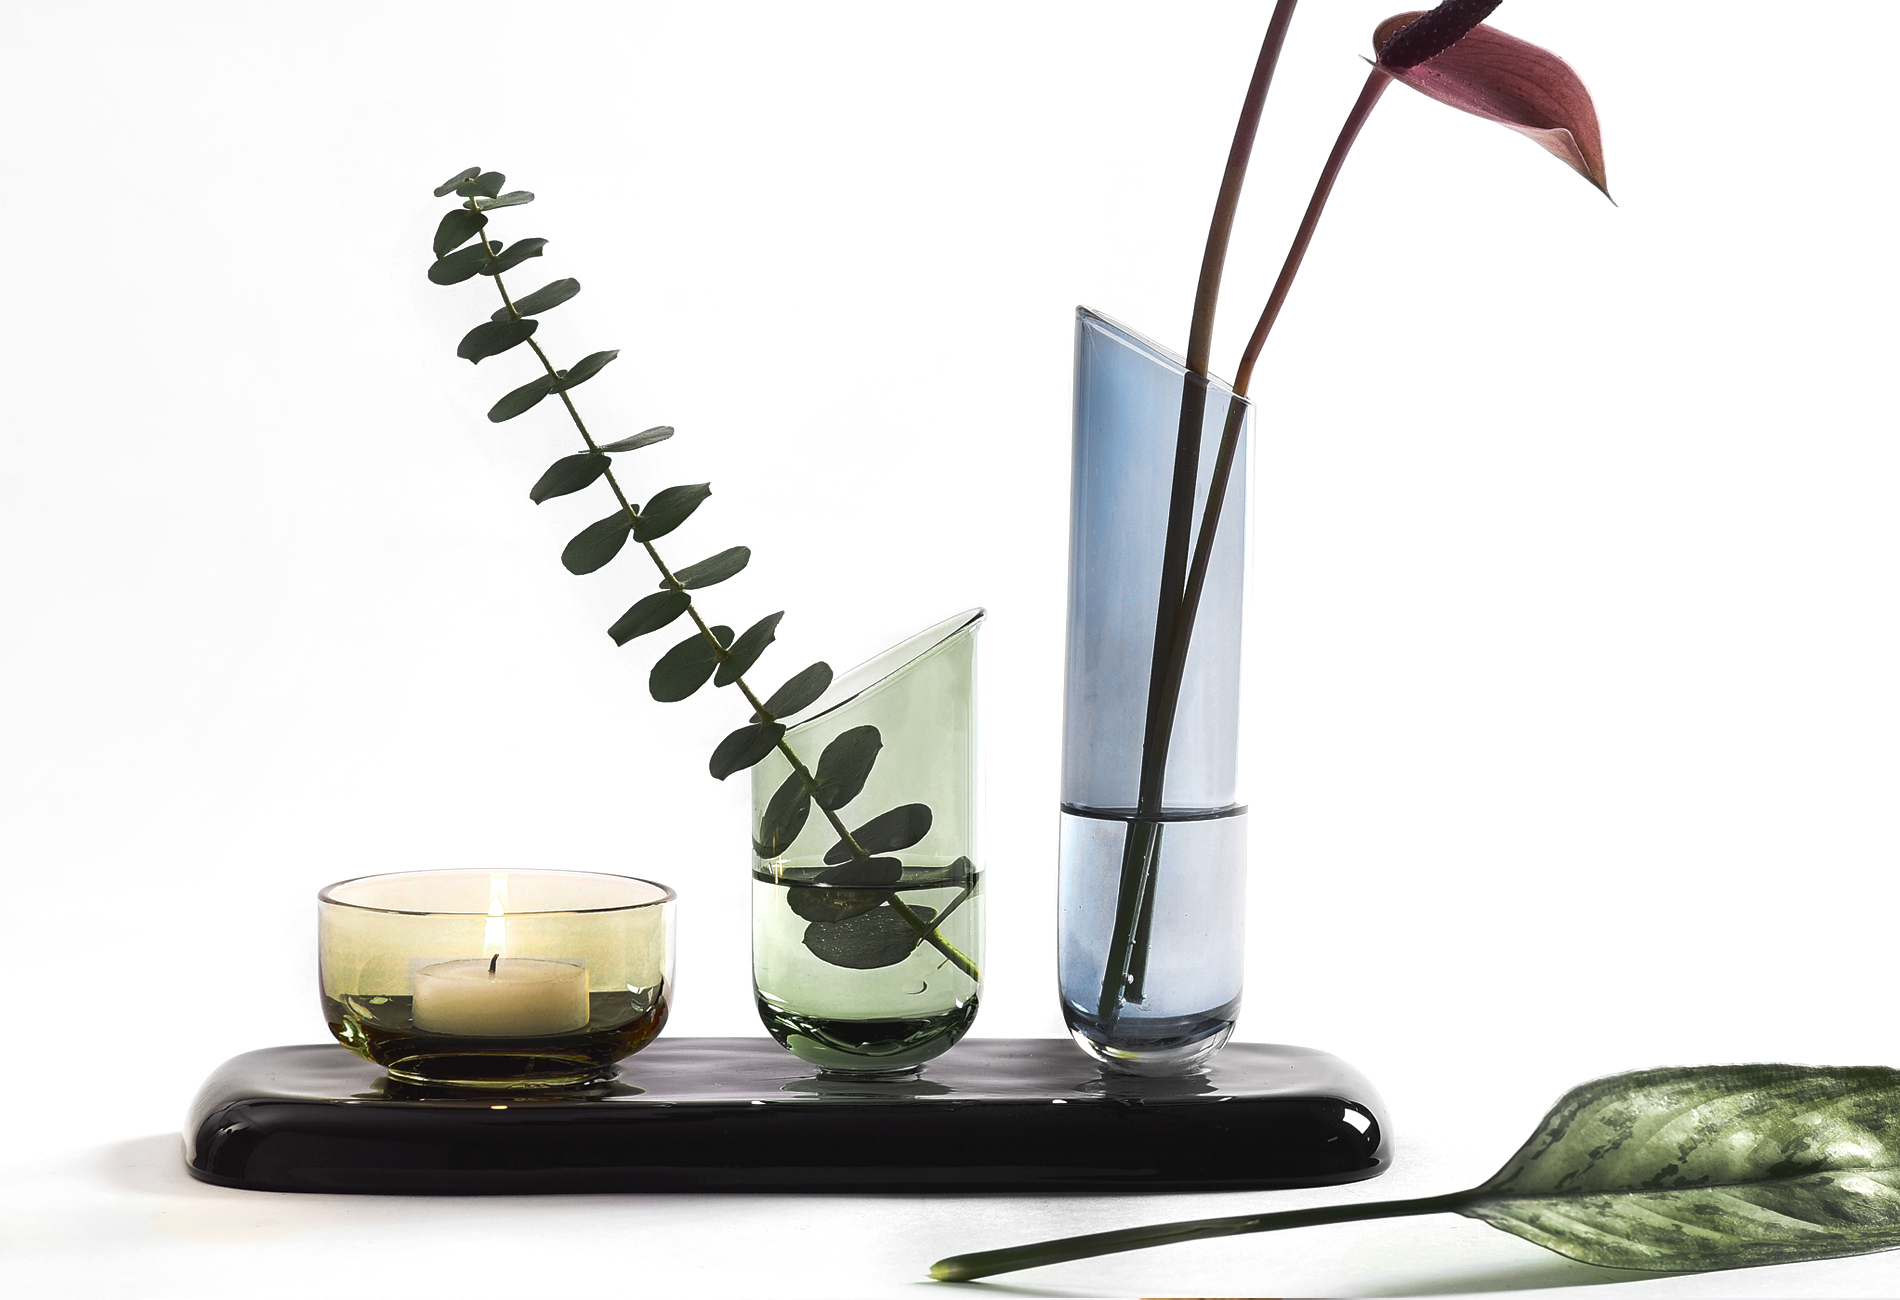 vase - Denis Guidone Bolia design - 01